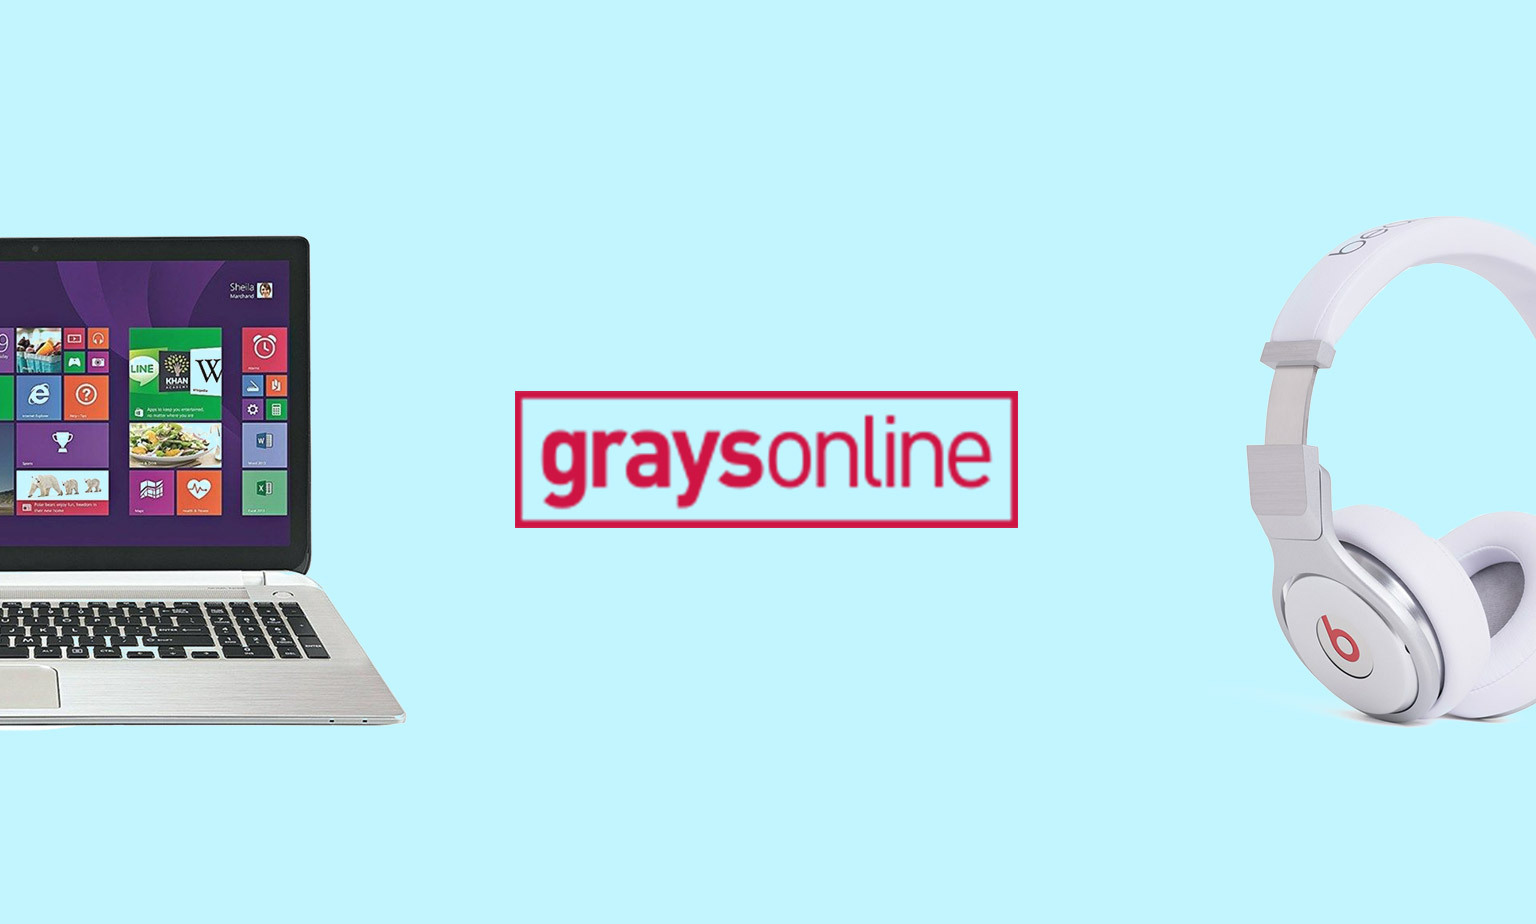 20% off Graysonline Tech Products*